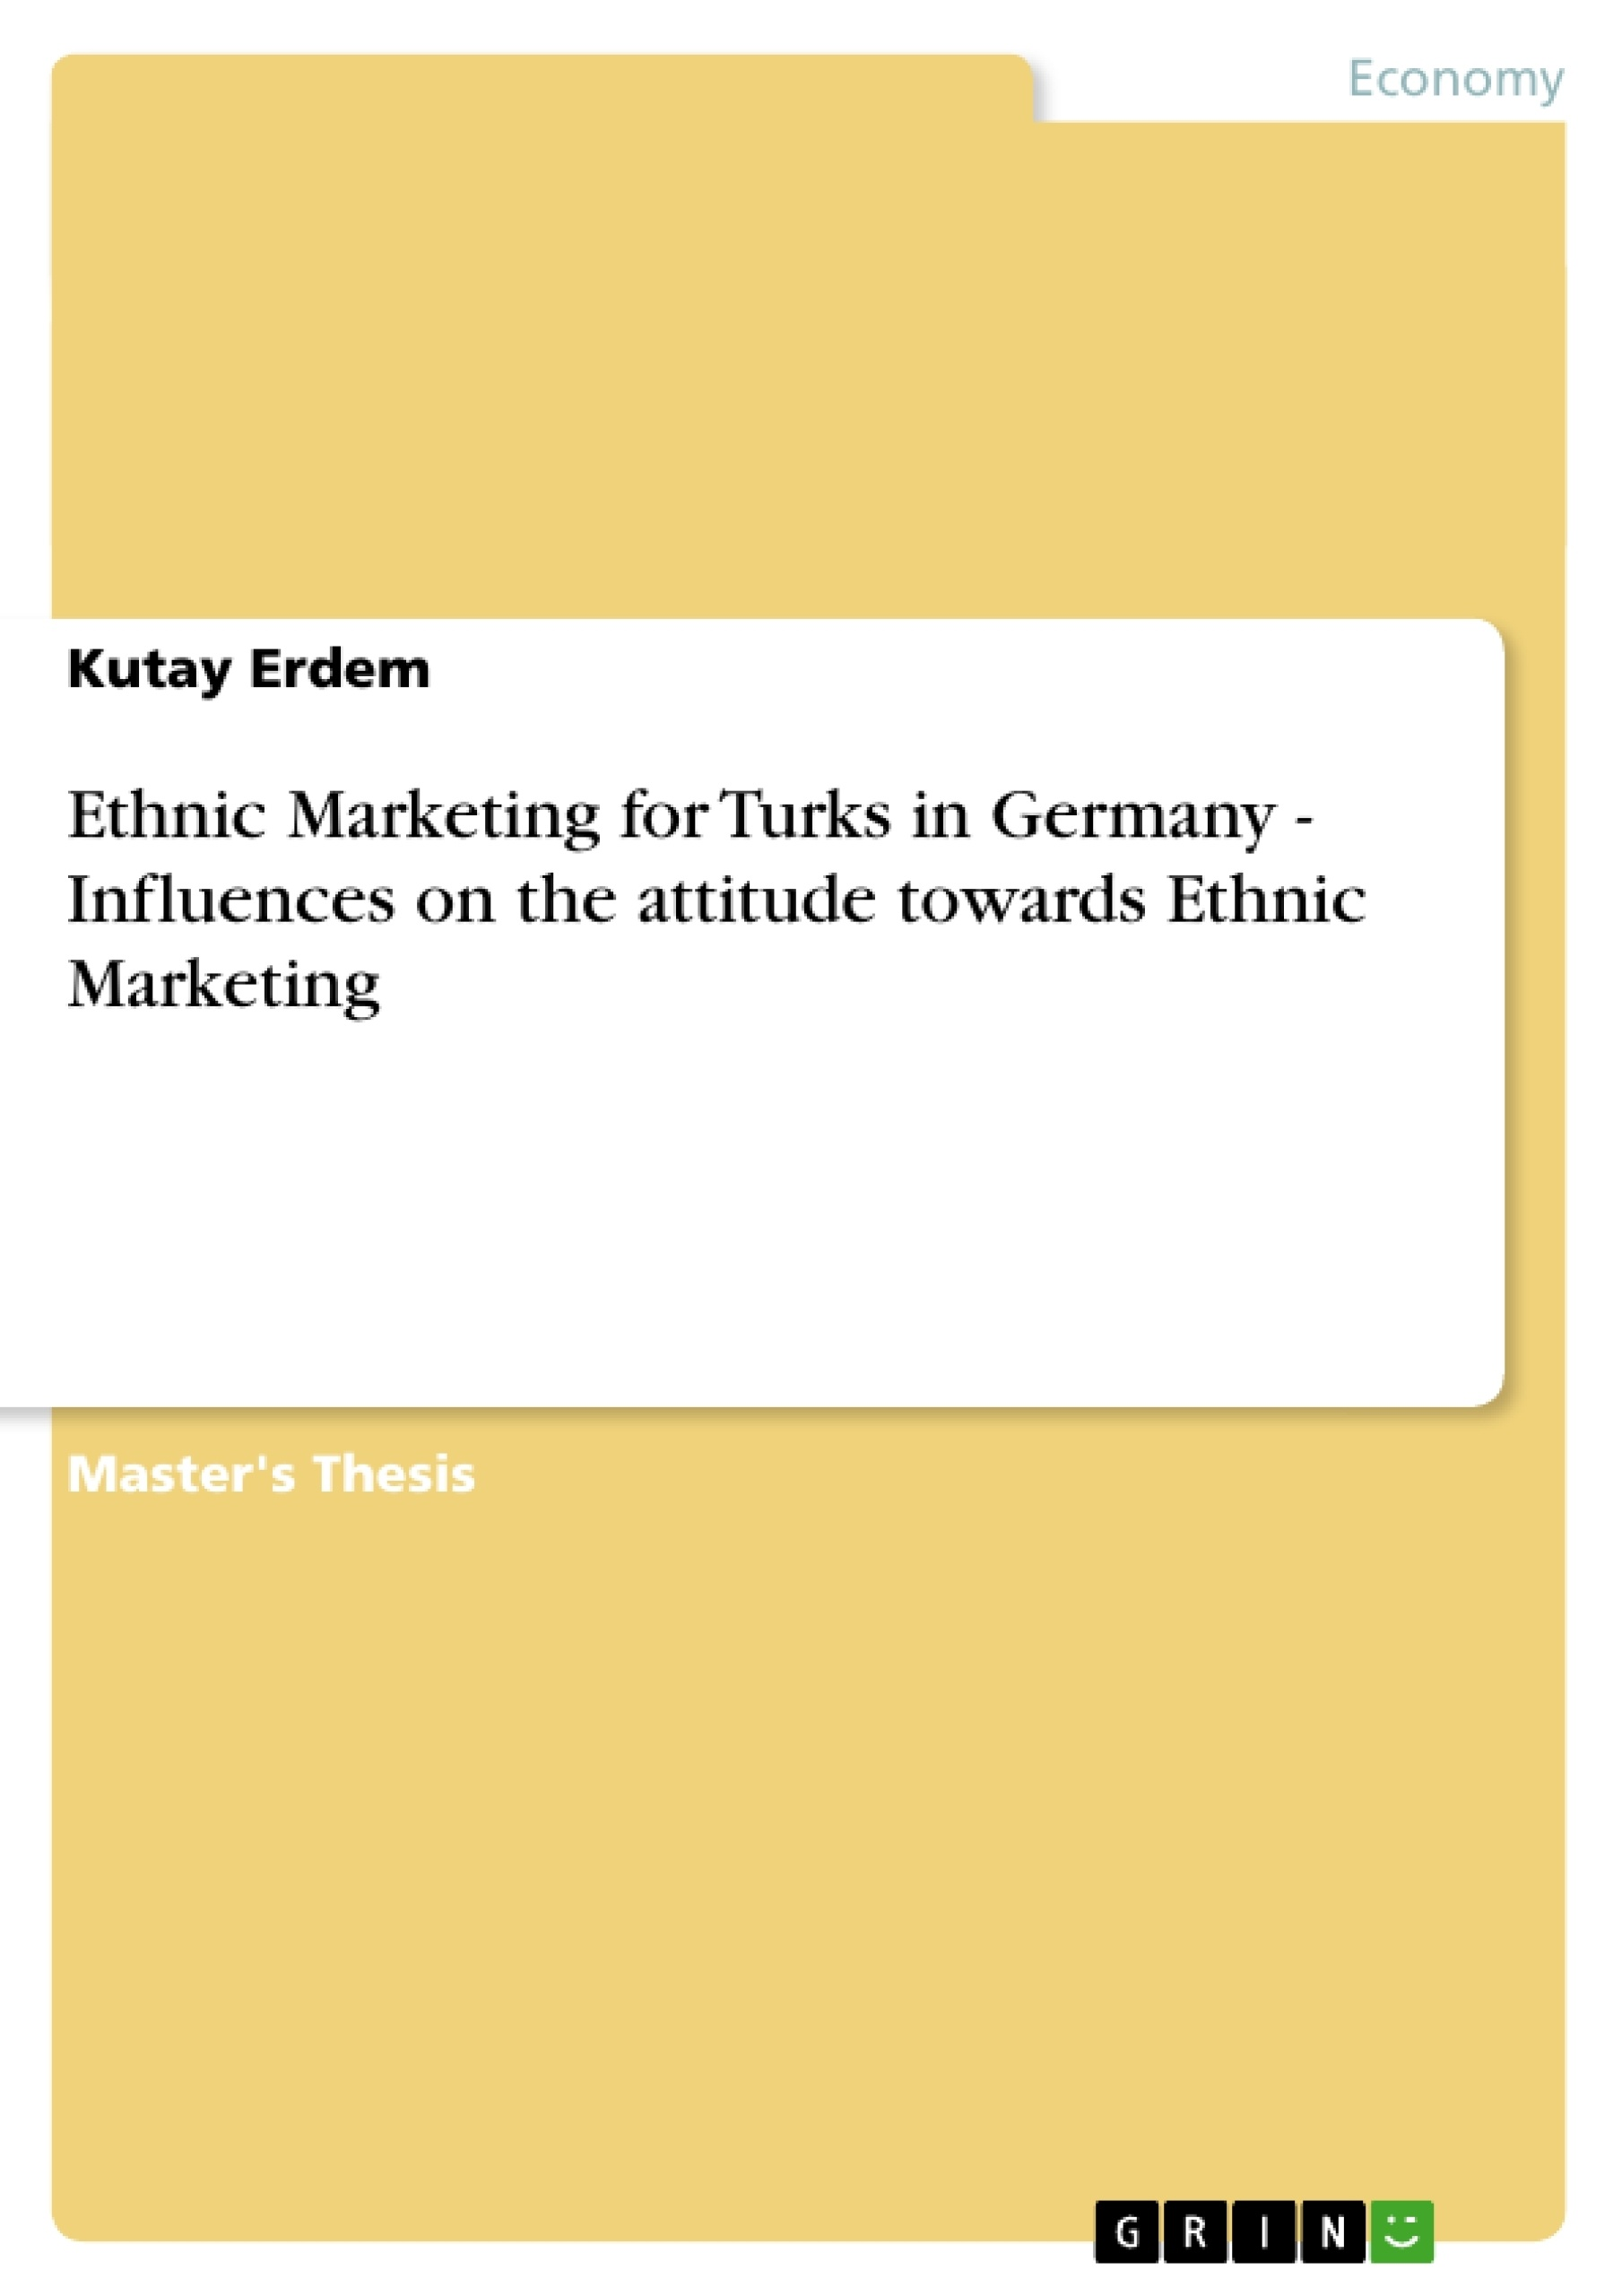 Title: Ethnic Marketing for Turks in Germany -  Influences on the attitude towards Ethnic Marketing